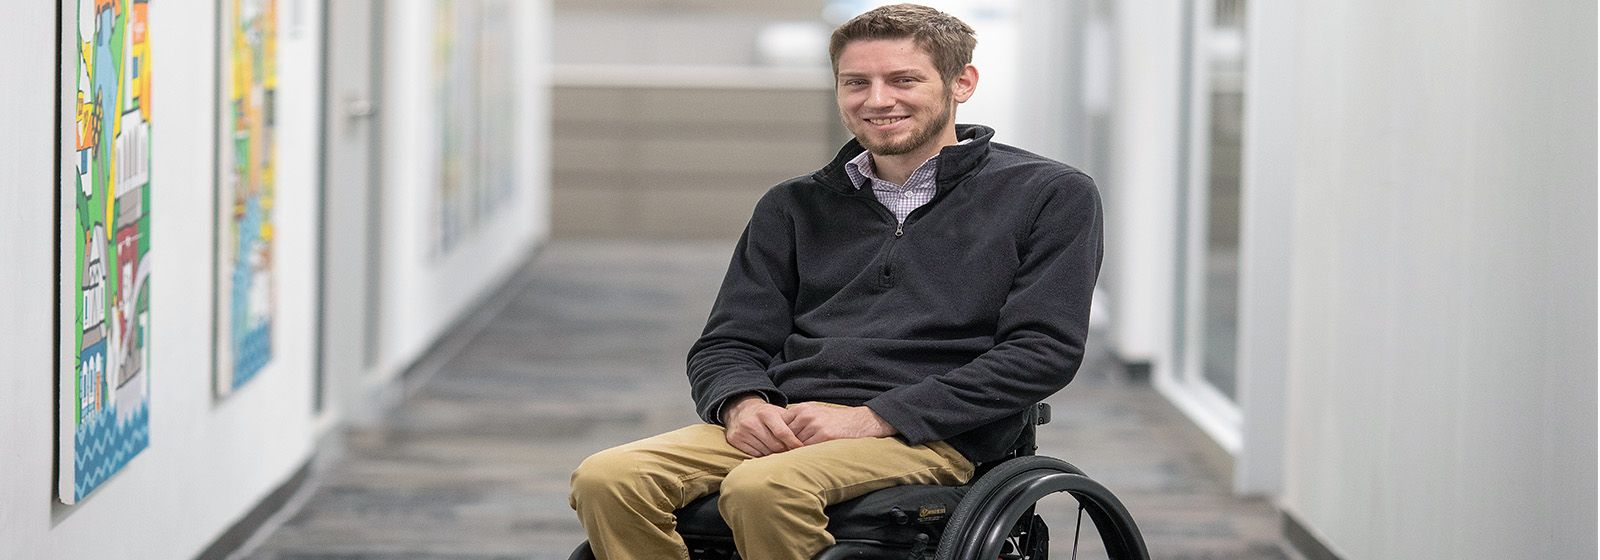 After car wreck, Collin Humphrey faced adversity and persevered